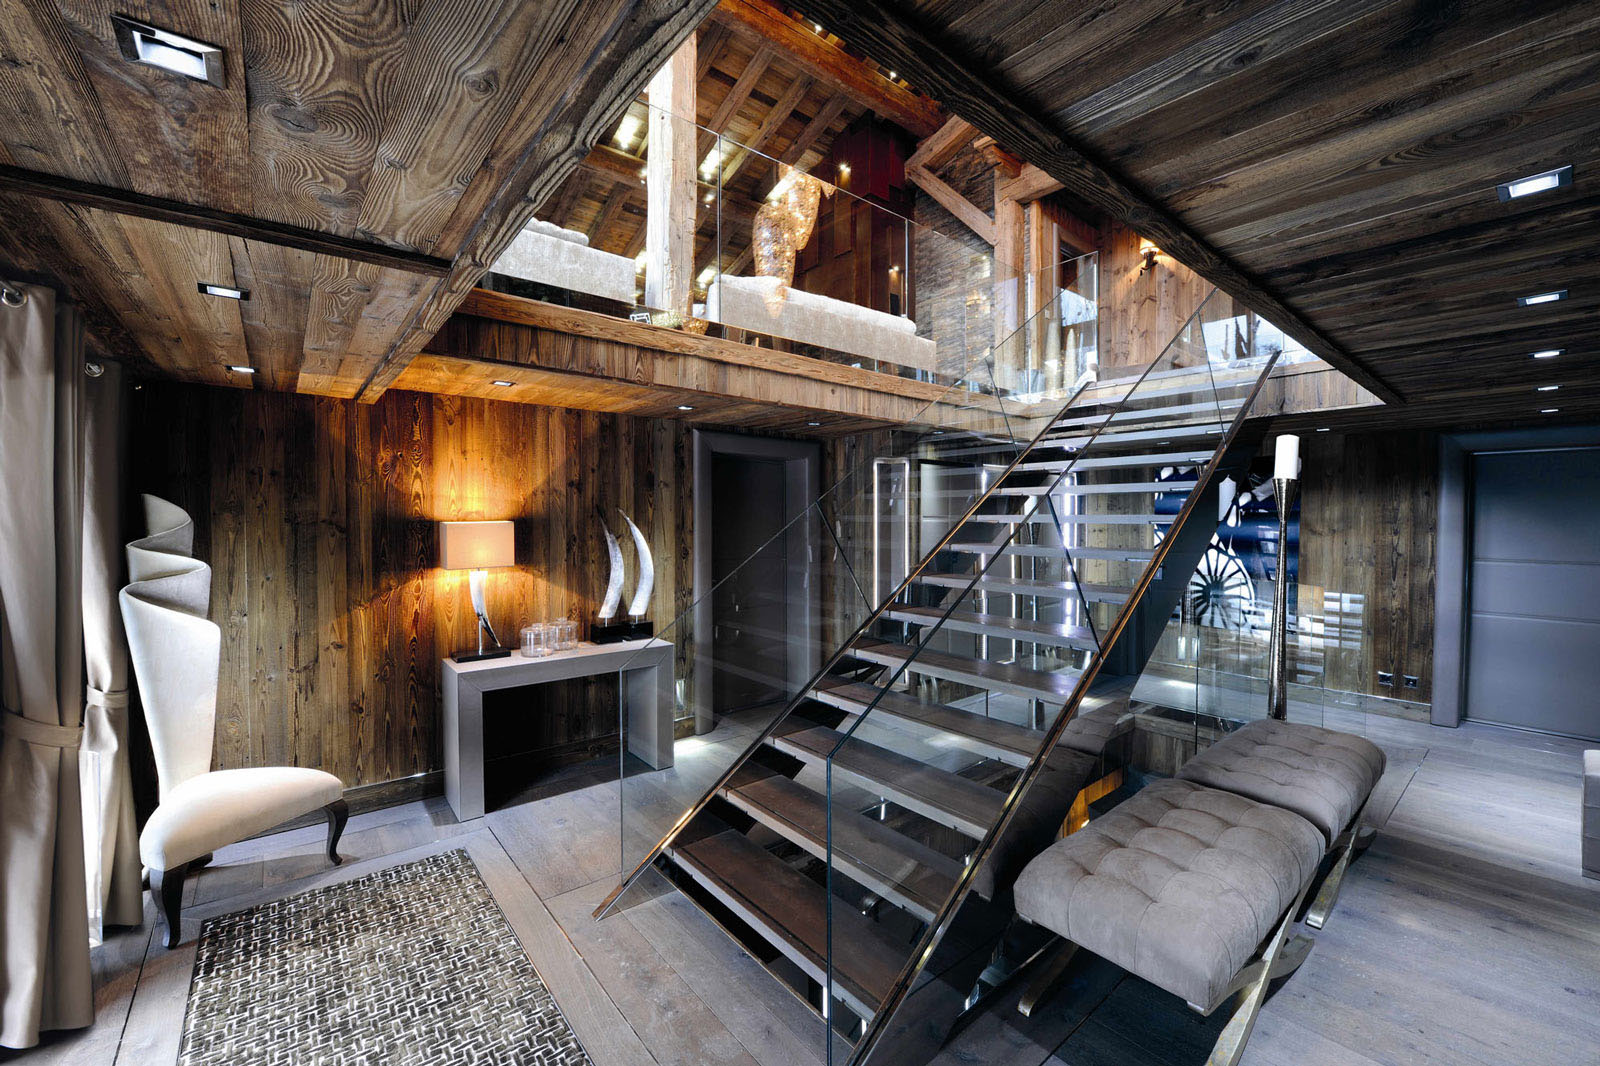 Chic modern rustic chalet in the rh ne alpes idesignarch interior design architecture - Chalet architectuur ...